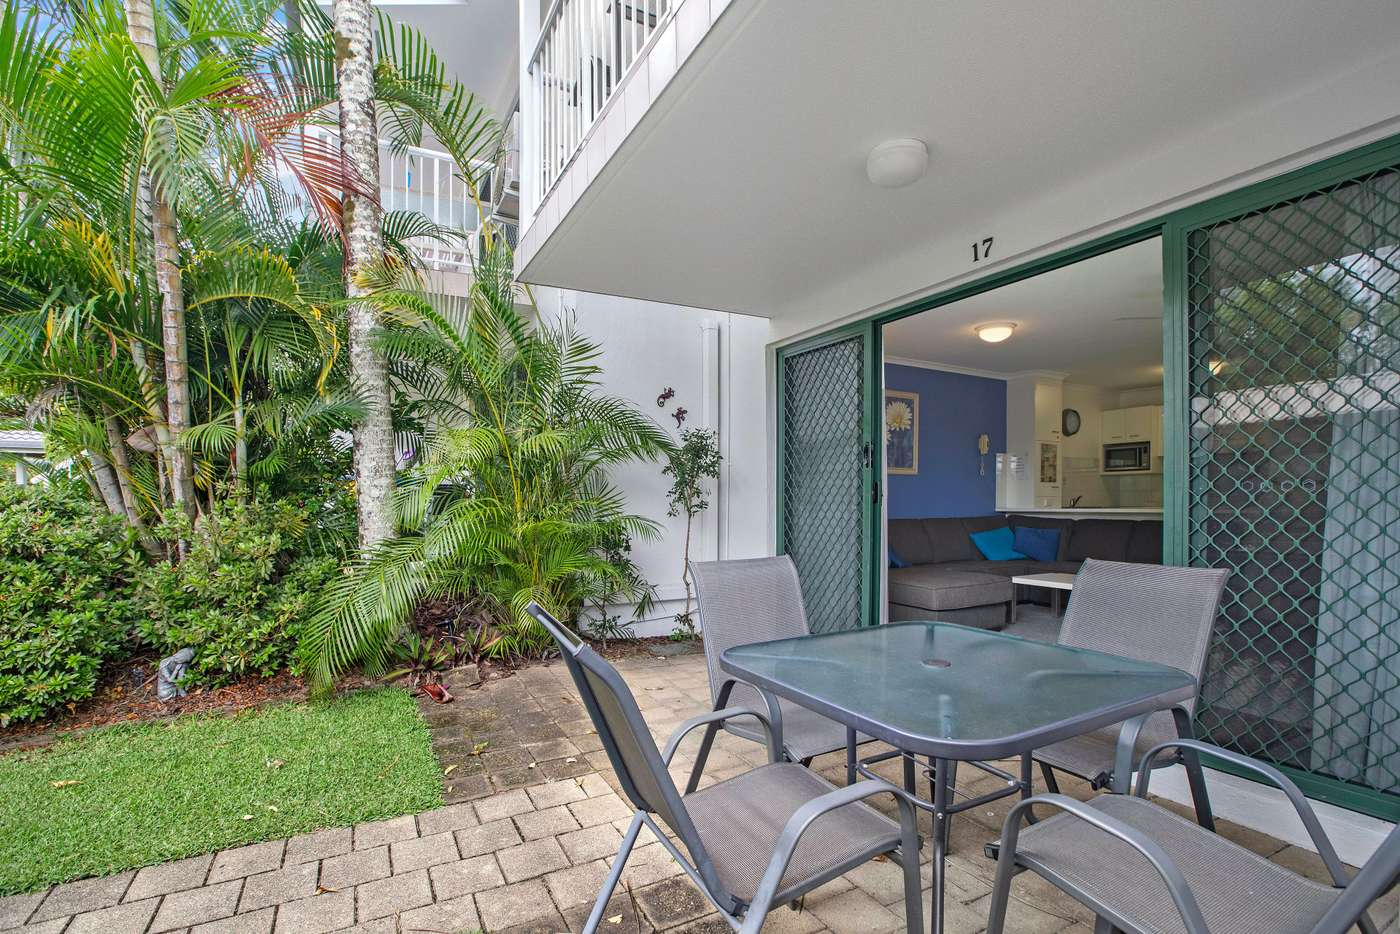 Seventh view of Homely unit listing, 17/162-164 Noosa Parade, Noosaville QLD 4566